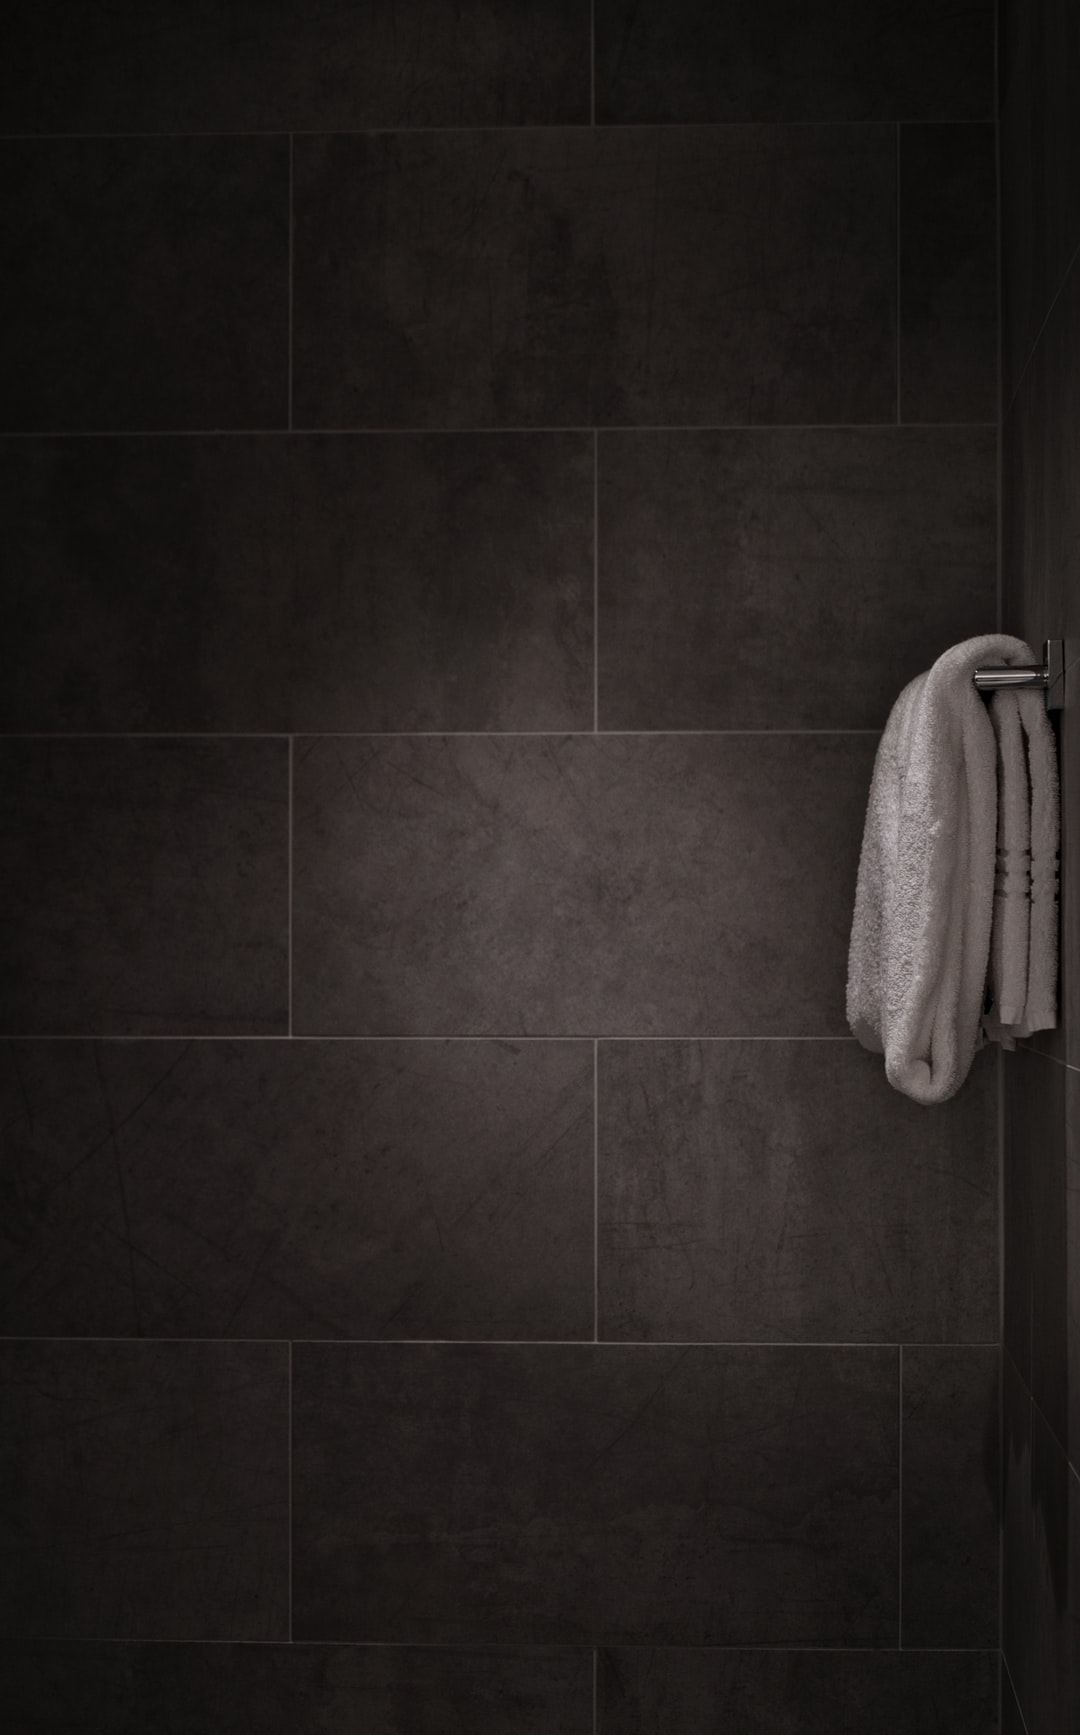 Tiled shower wall